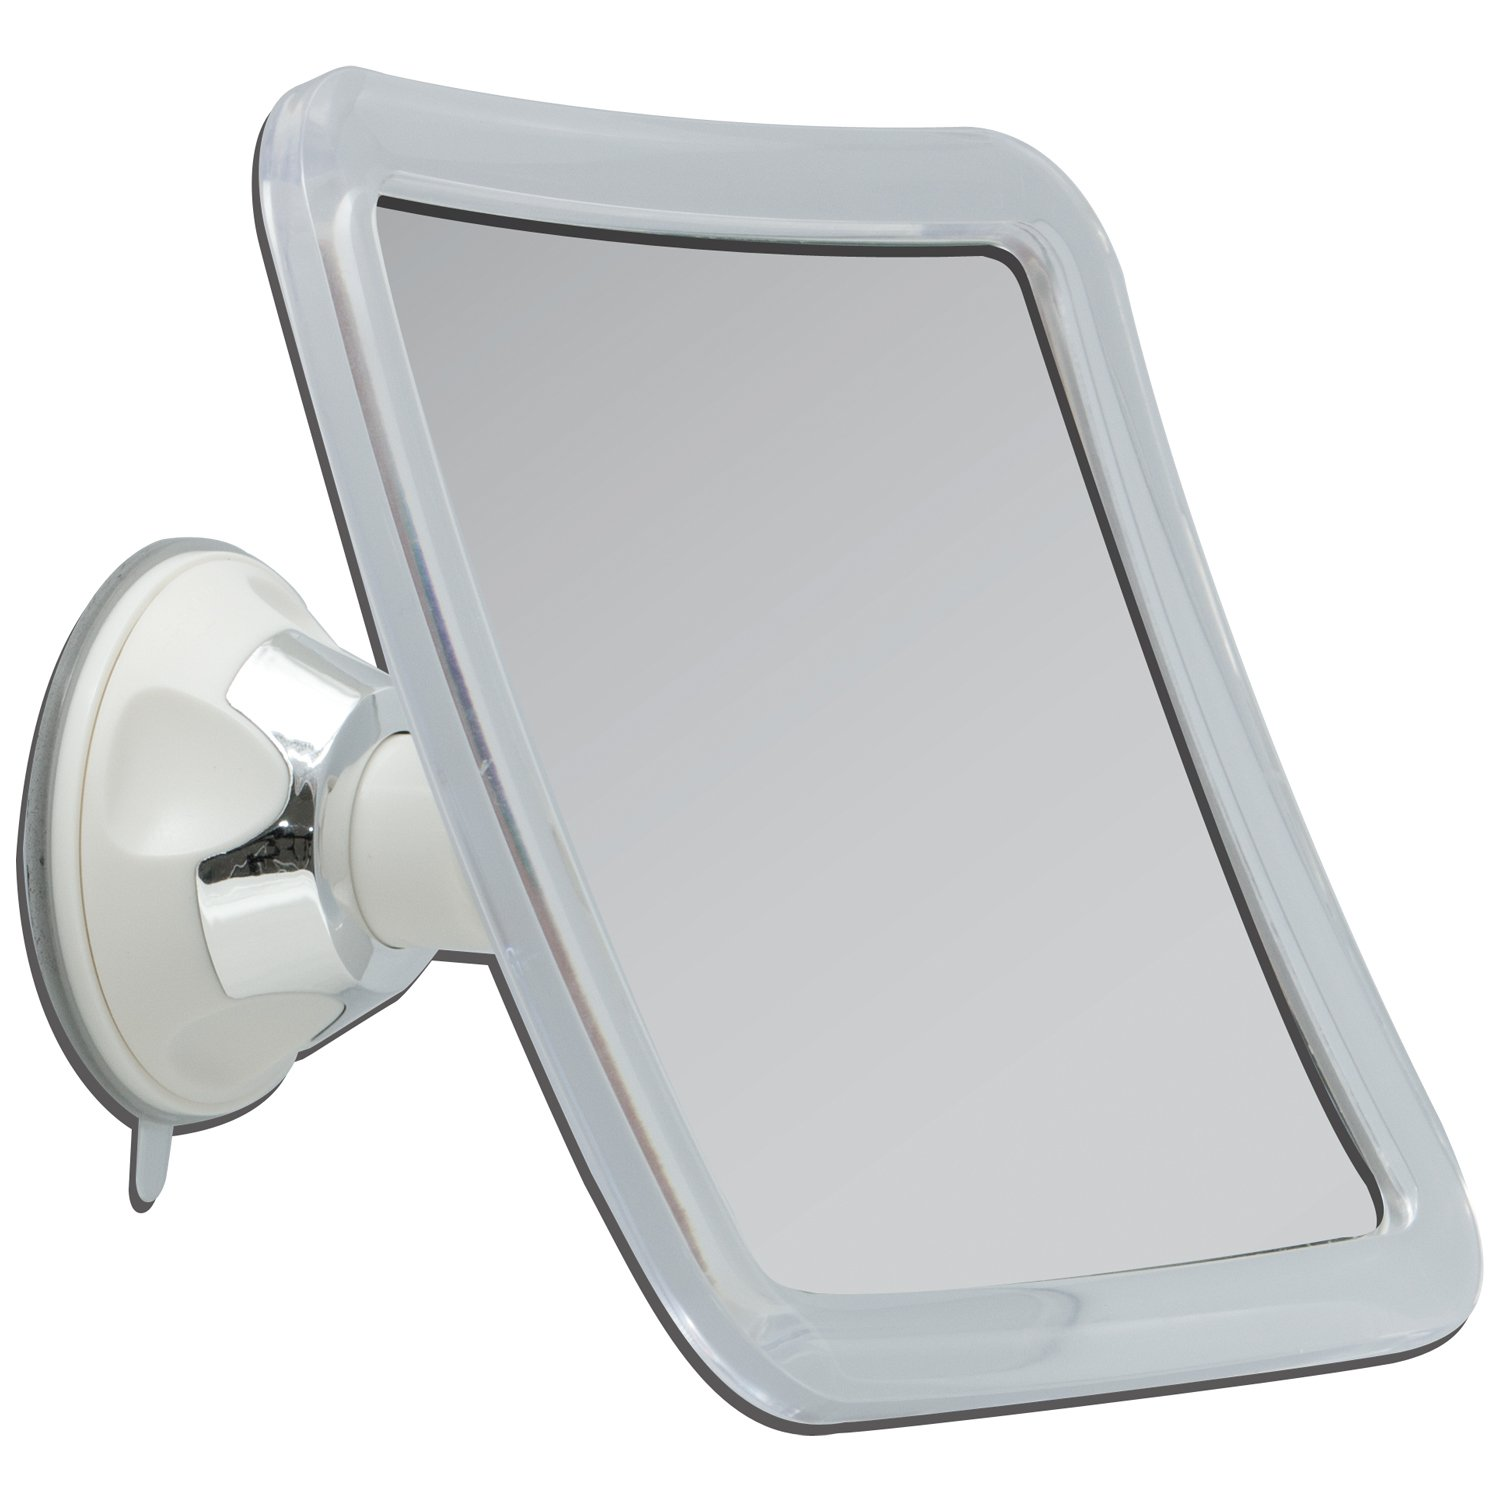 Amazon zadro zswivel power suction cup mirror white amazon zadro zswivel power suction cup mirror white chrome personal makeup mirrors beauty amipublicfo Gallery